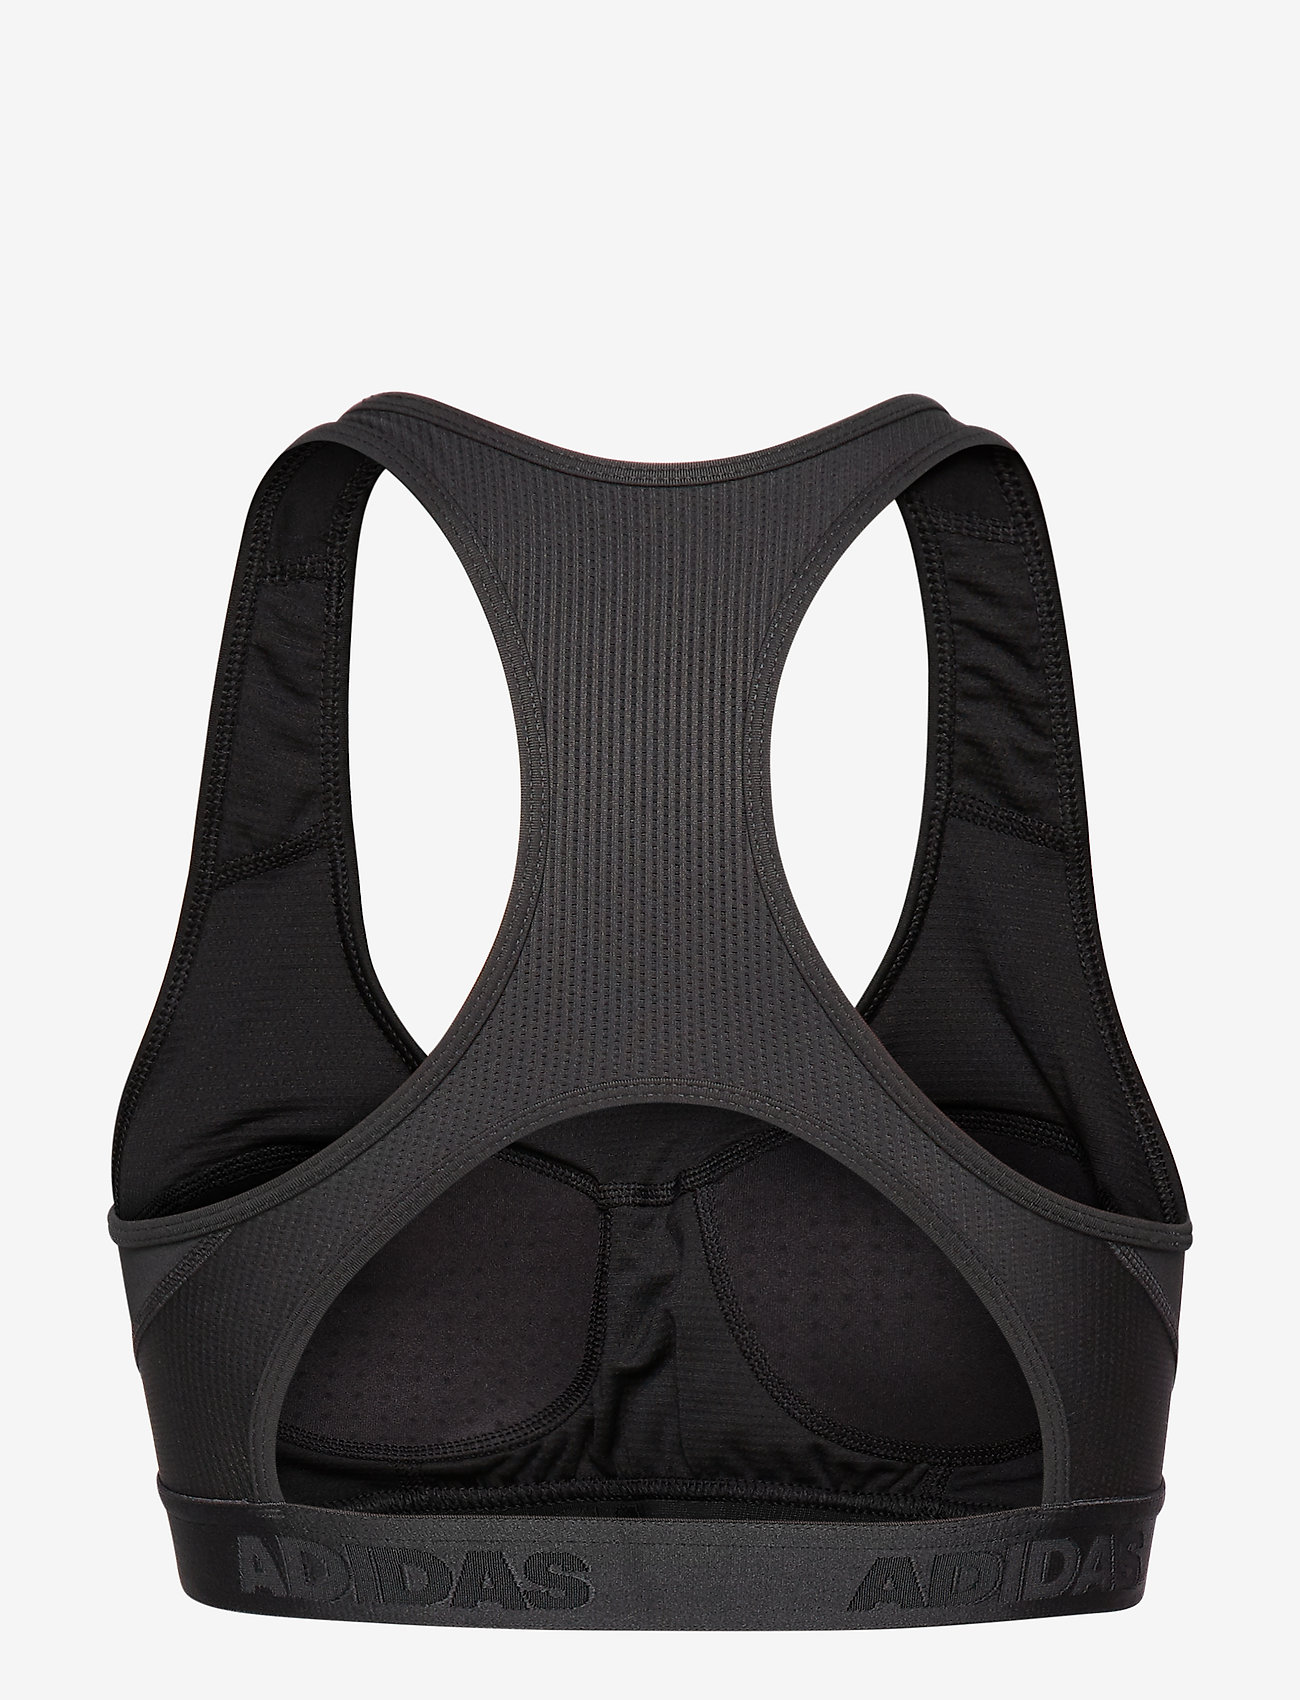 adidas Performance - DRST ASK SPR PD - sport bras: medium - black - 1